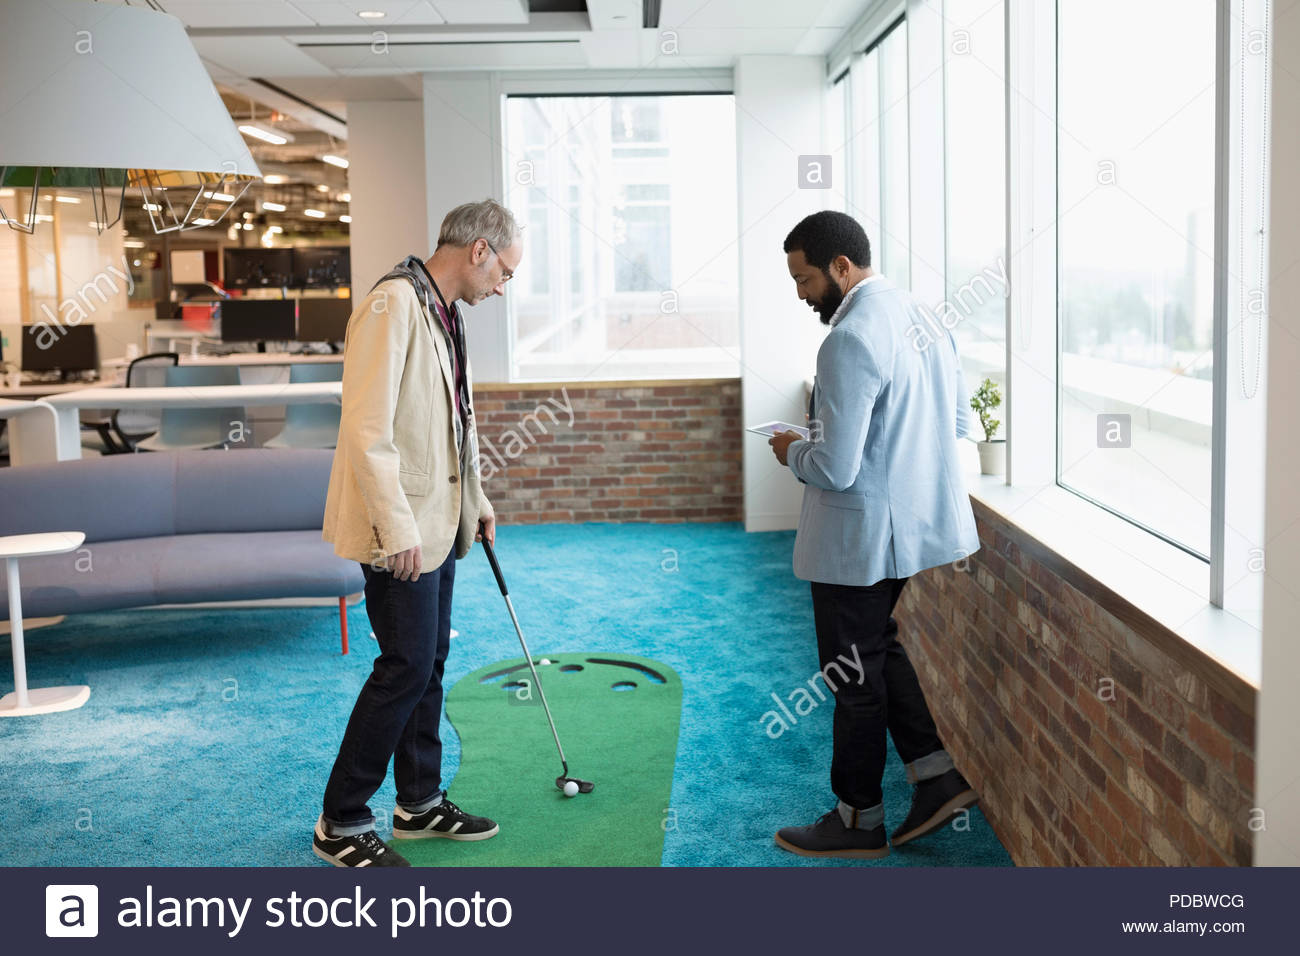 Creative businessman practicing putting in office - Stock Image